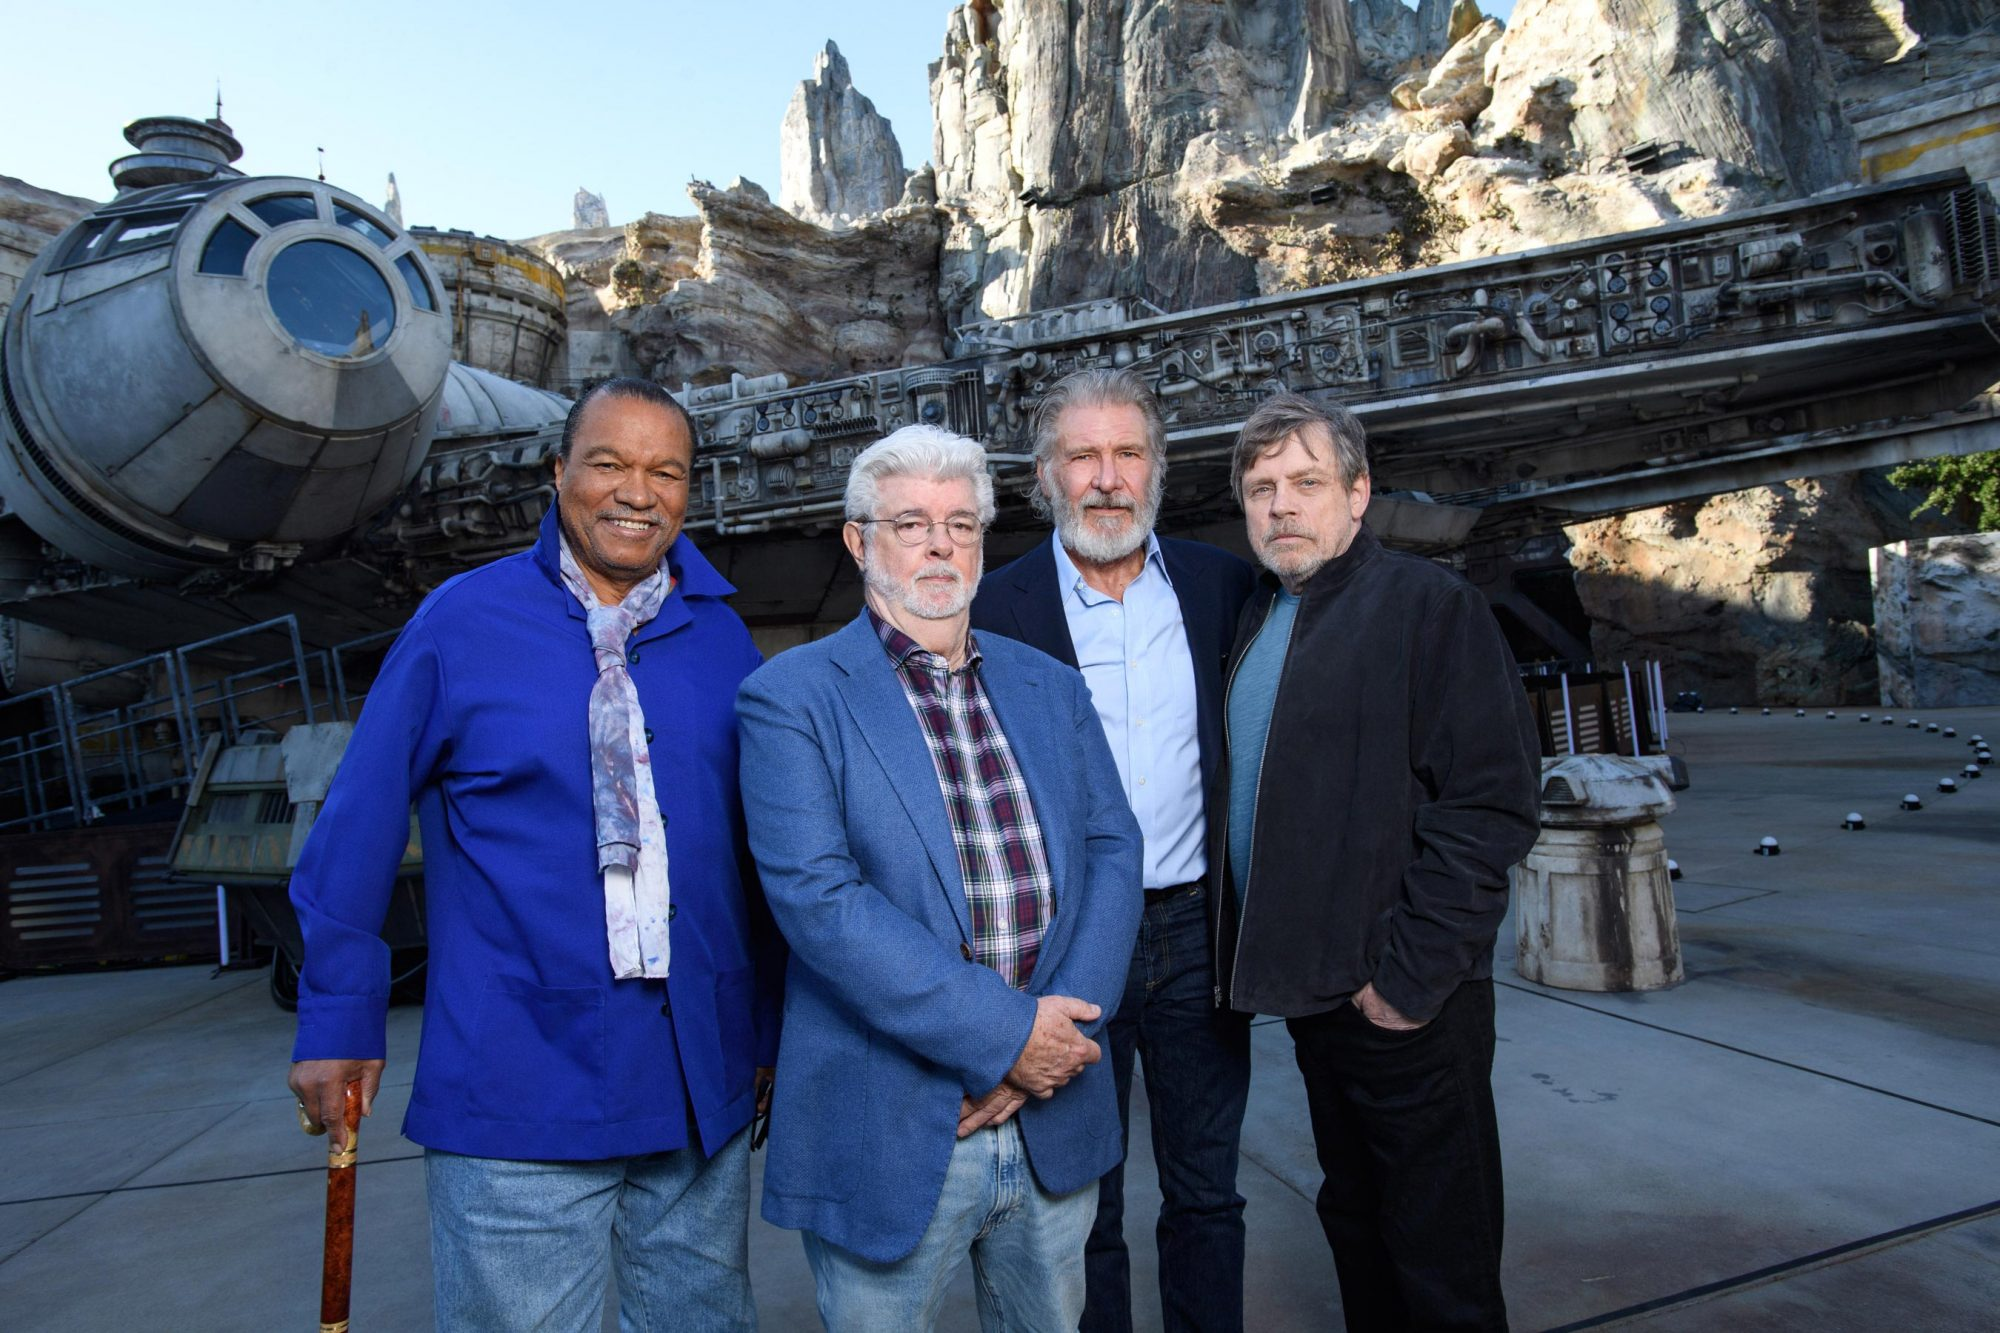 The Launch of Star Wars: Galaxy's Edge at Disneyland